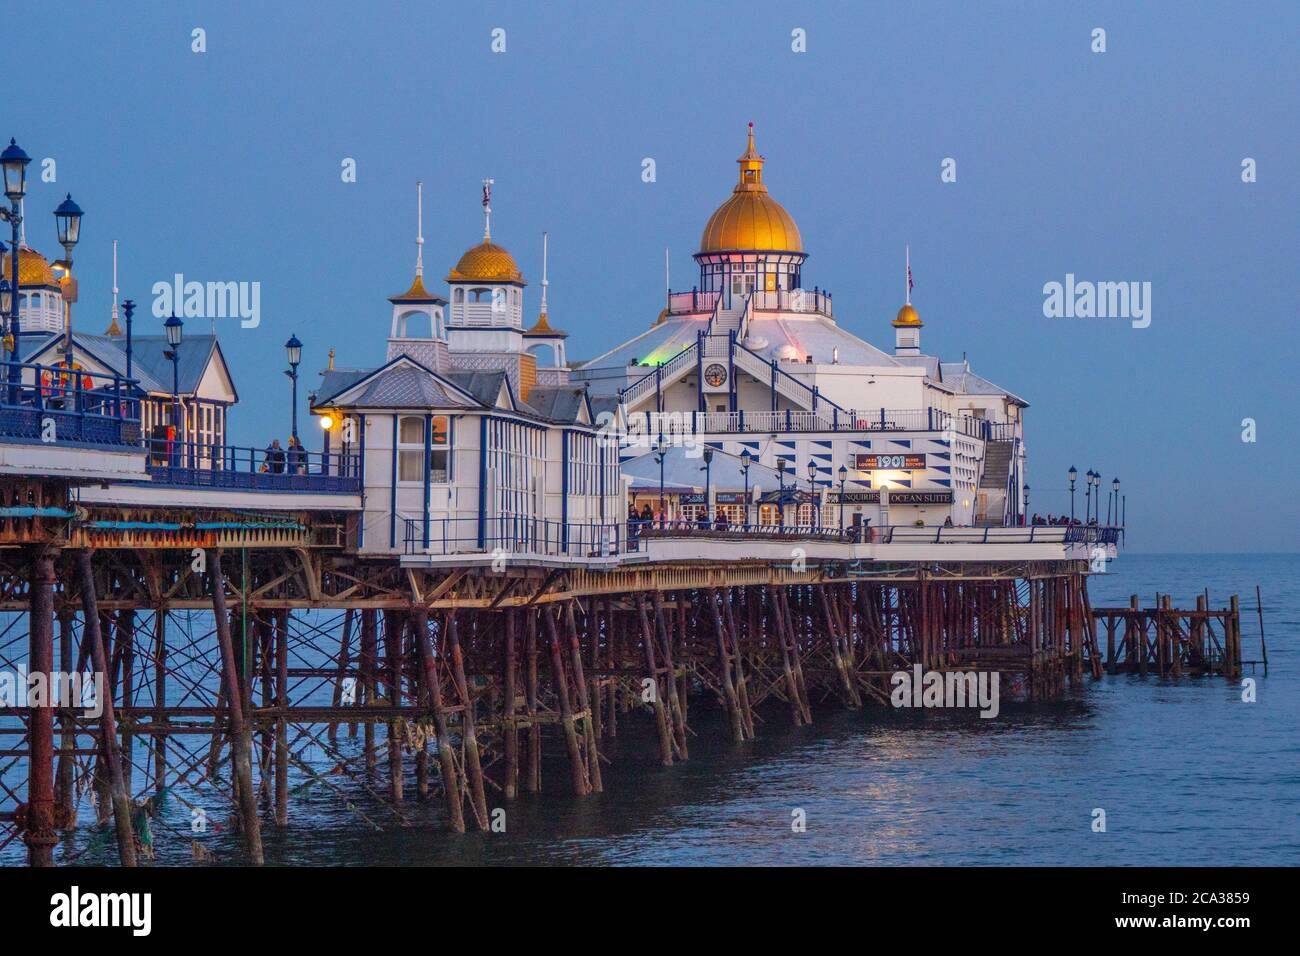 Eastbourne Pier at the South Coast of England - travel photography. Stock Photo